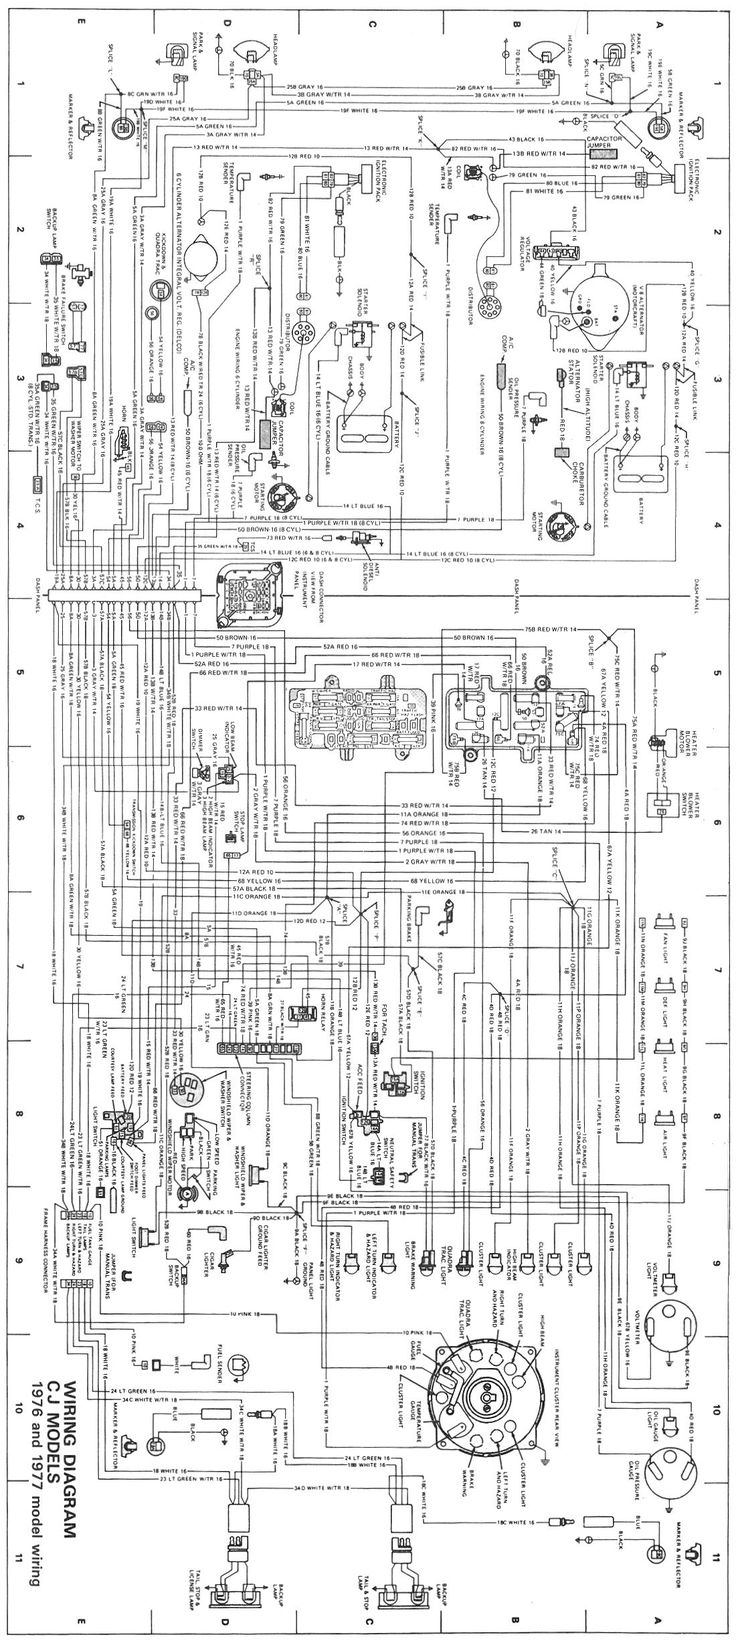 CJWiringDiagram19761977jpg 1100 2459 pixels – Jeep Cj7 Wiper Motor Wiring Diagram